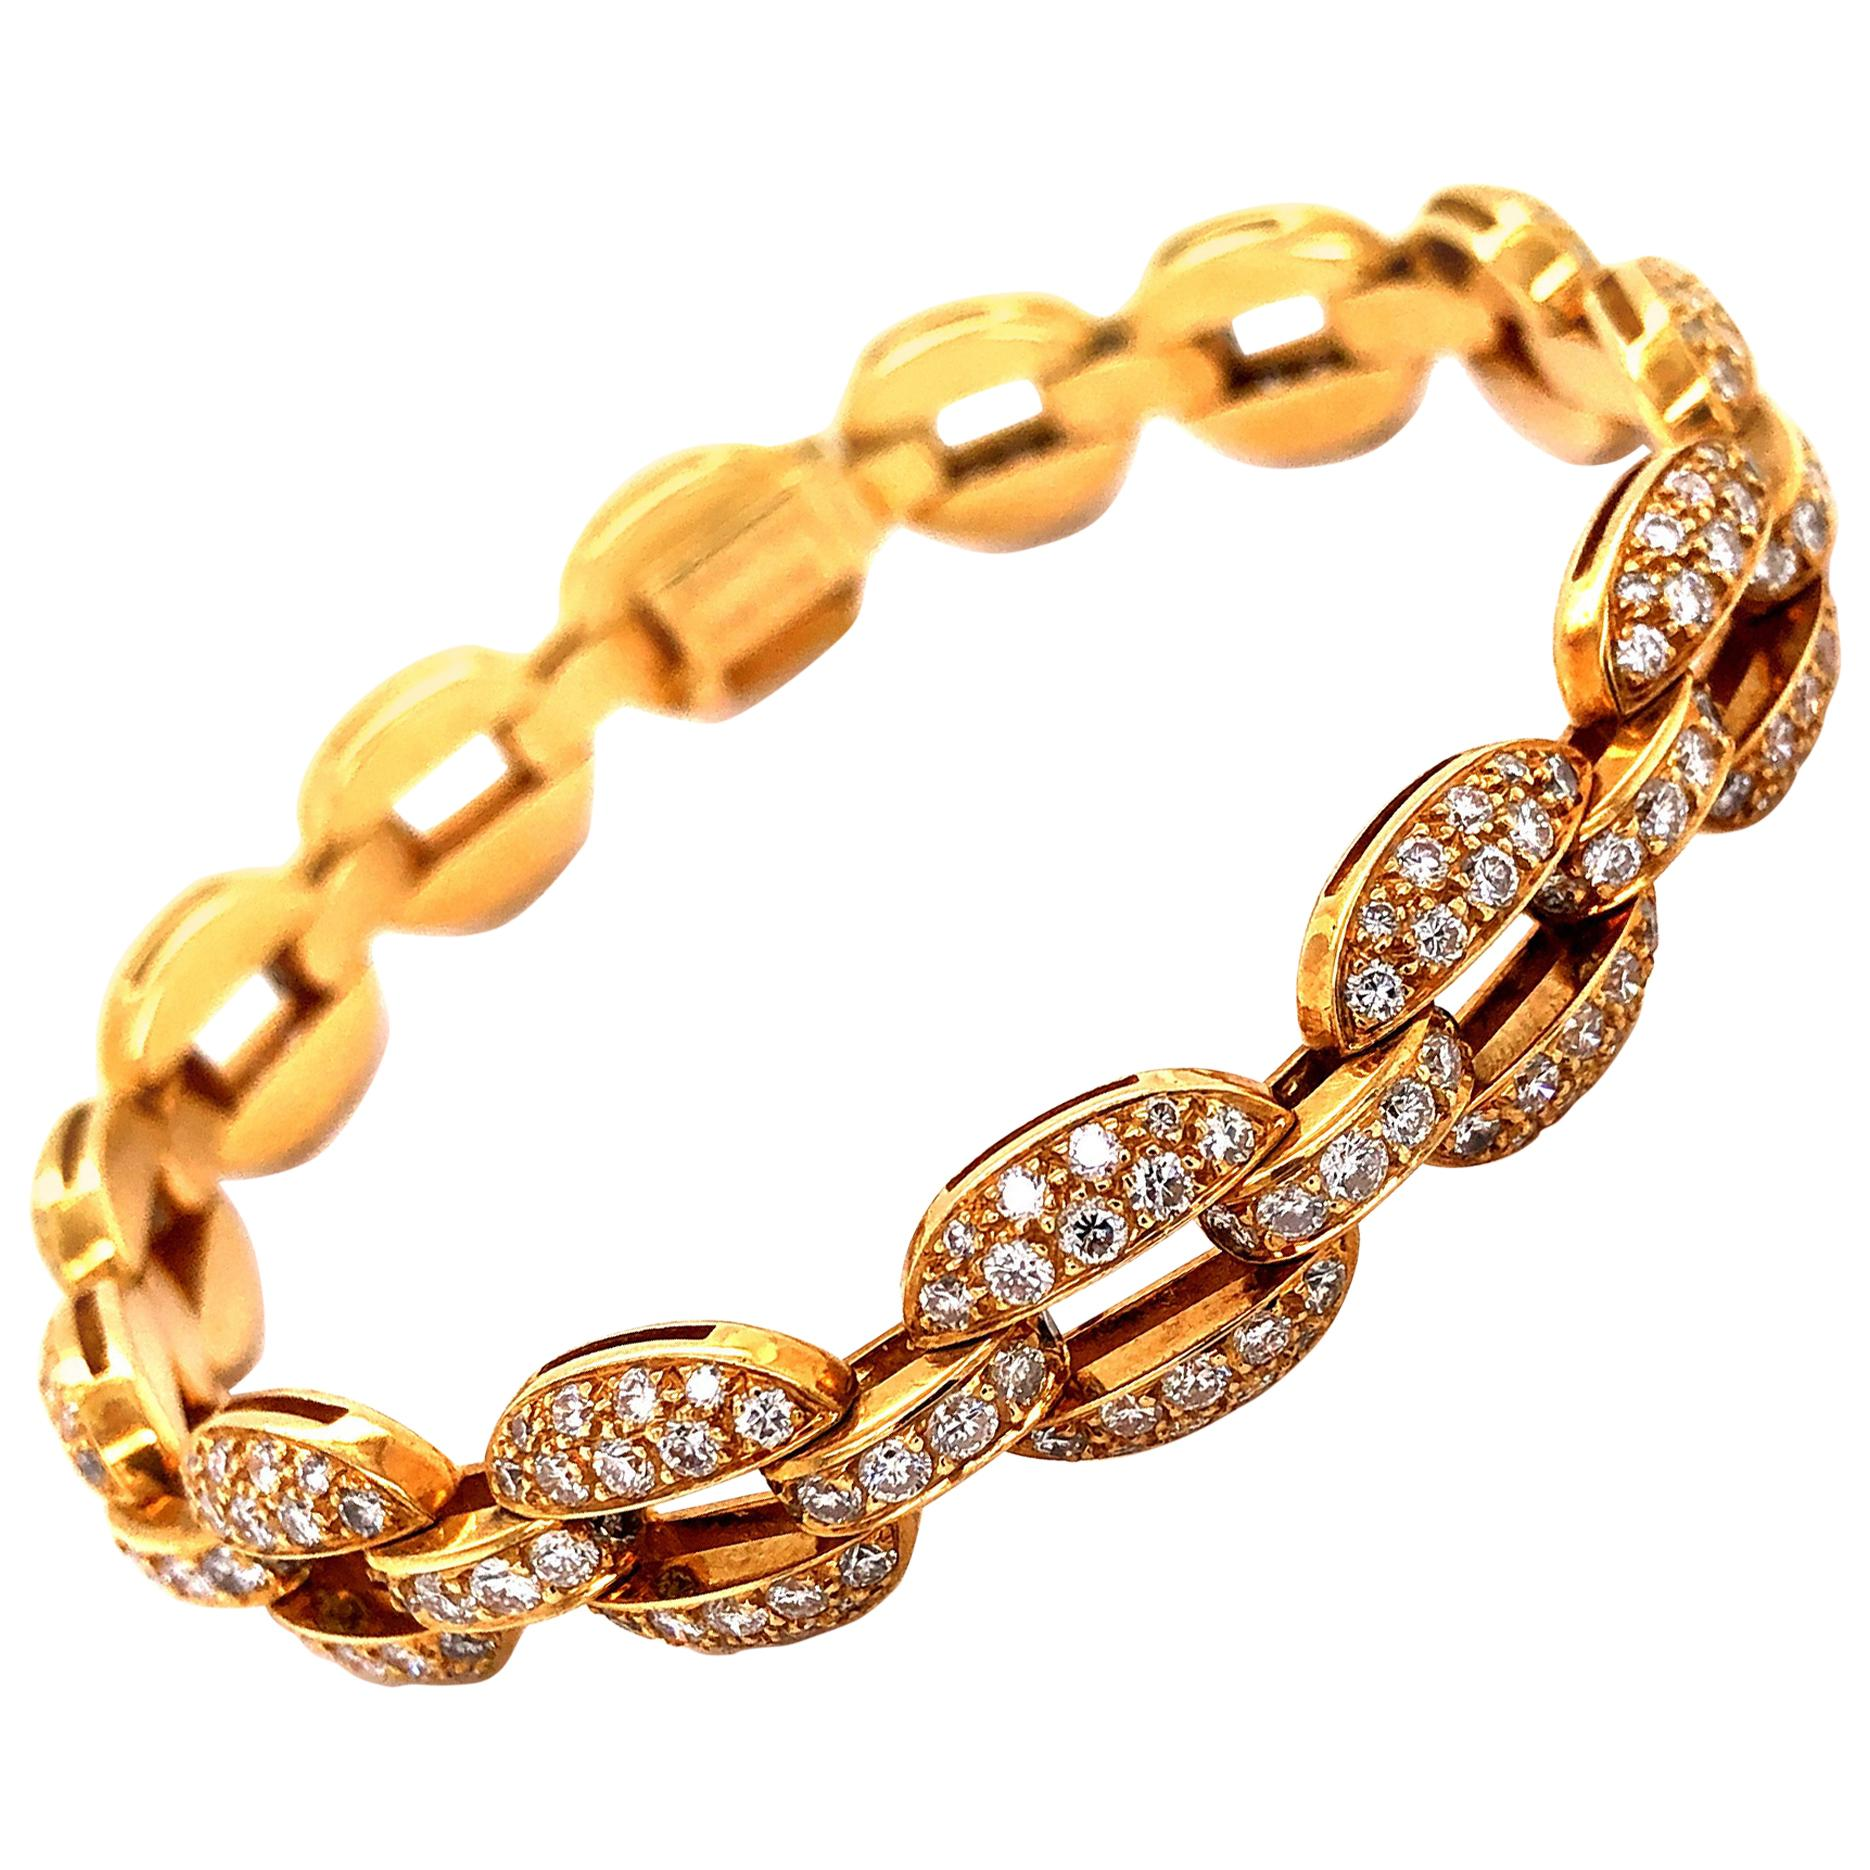 Timeless Cartier Diamond 18 Karat Yellow Gold Bracelet